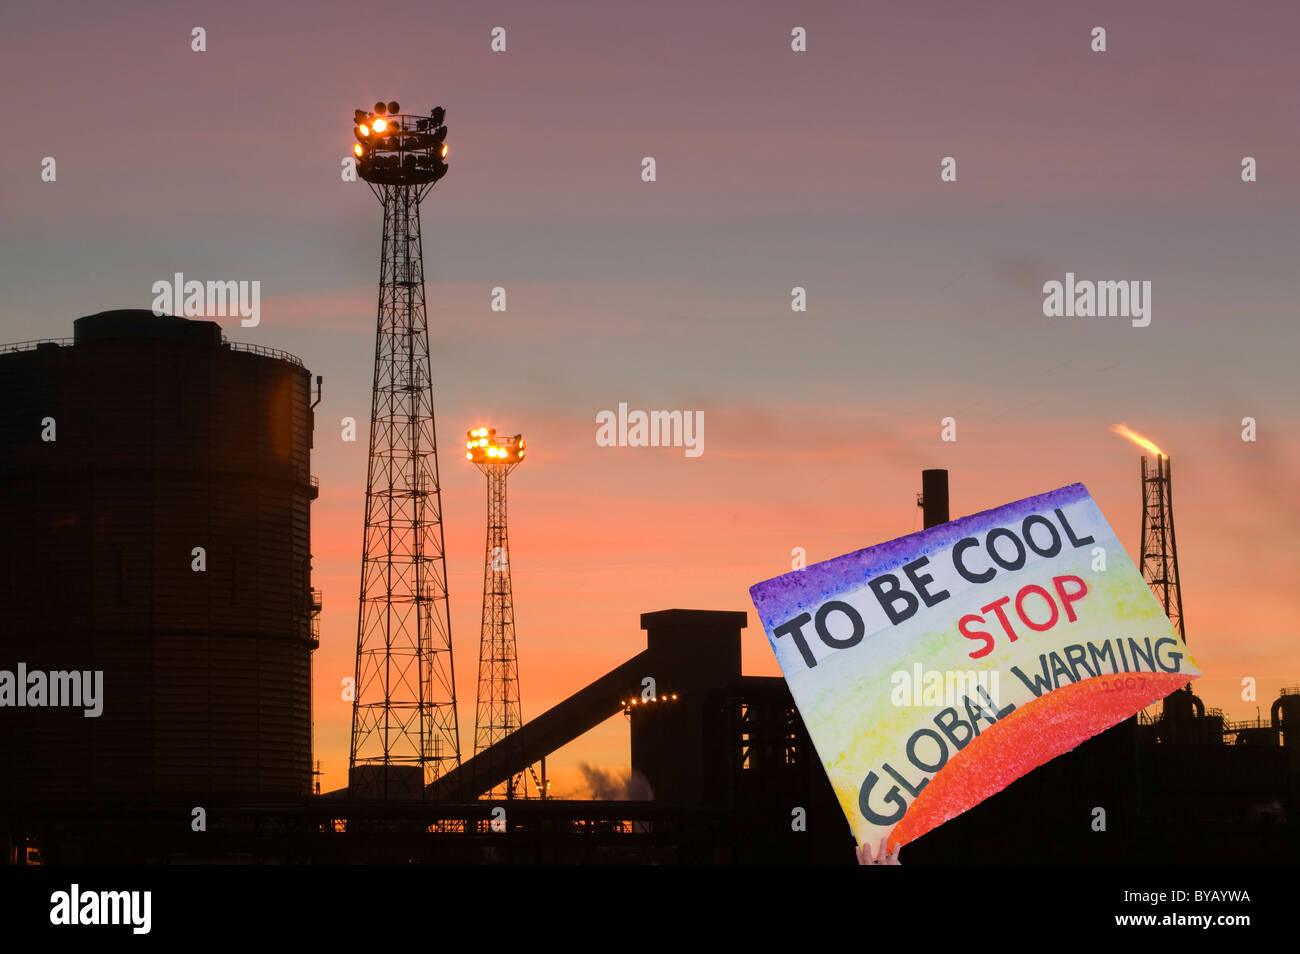 Emmissions from the Corus steelworks at Redcar UK, with a protest banner. - Stock Image